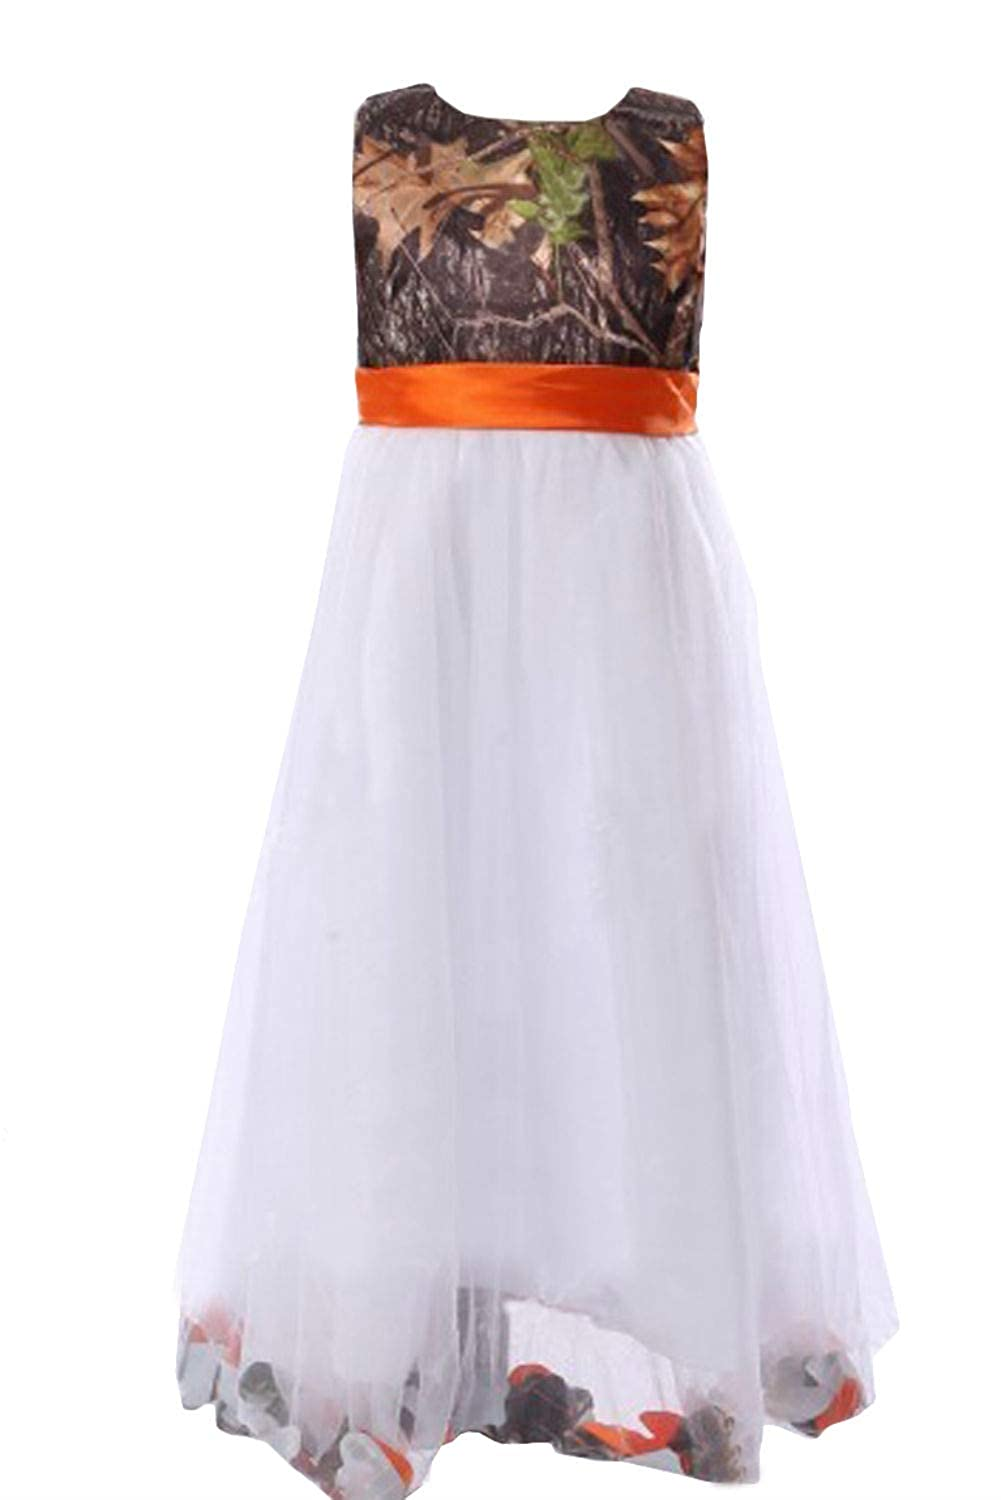 343efe7361ab1 Amazon.com: DINGZAN Camo and White Tulle Flower Girl Dress Mini Junior  Bridesmaid Gowns: Clothing